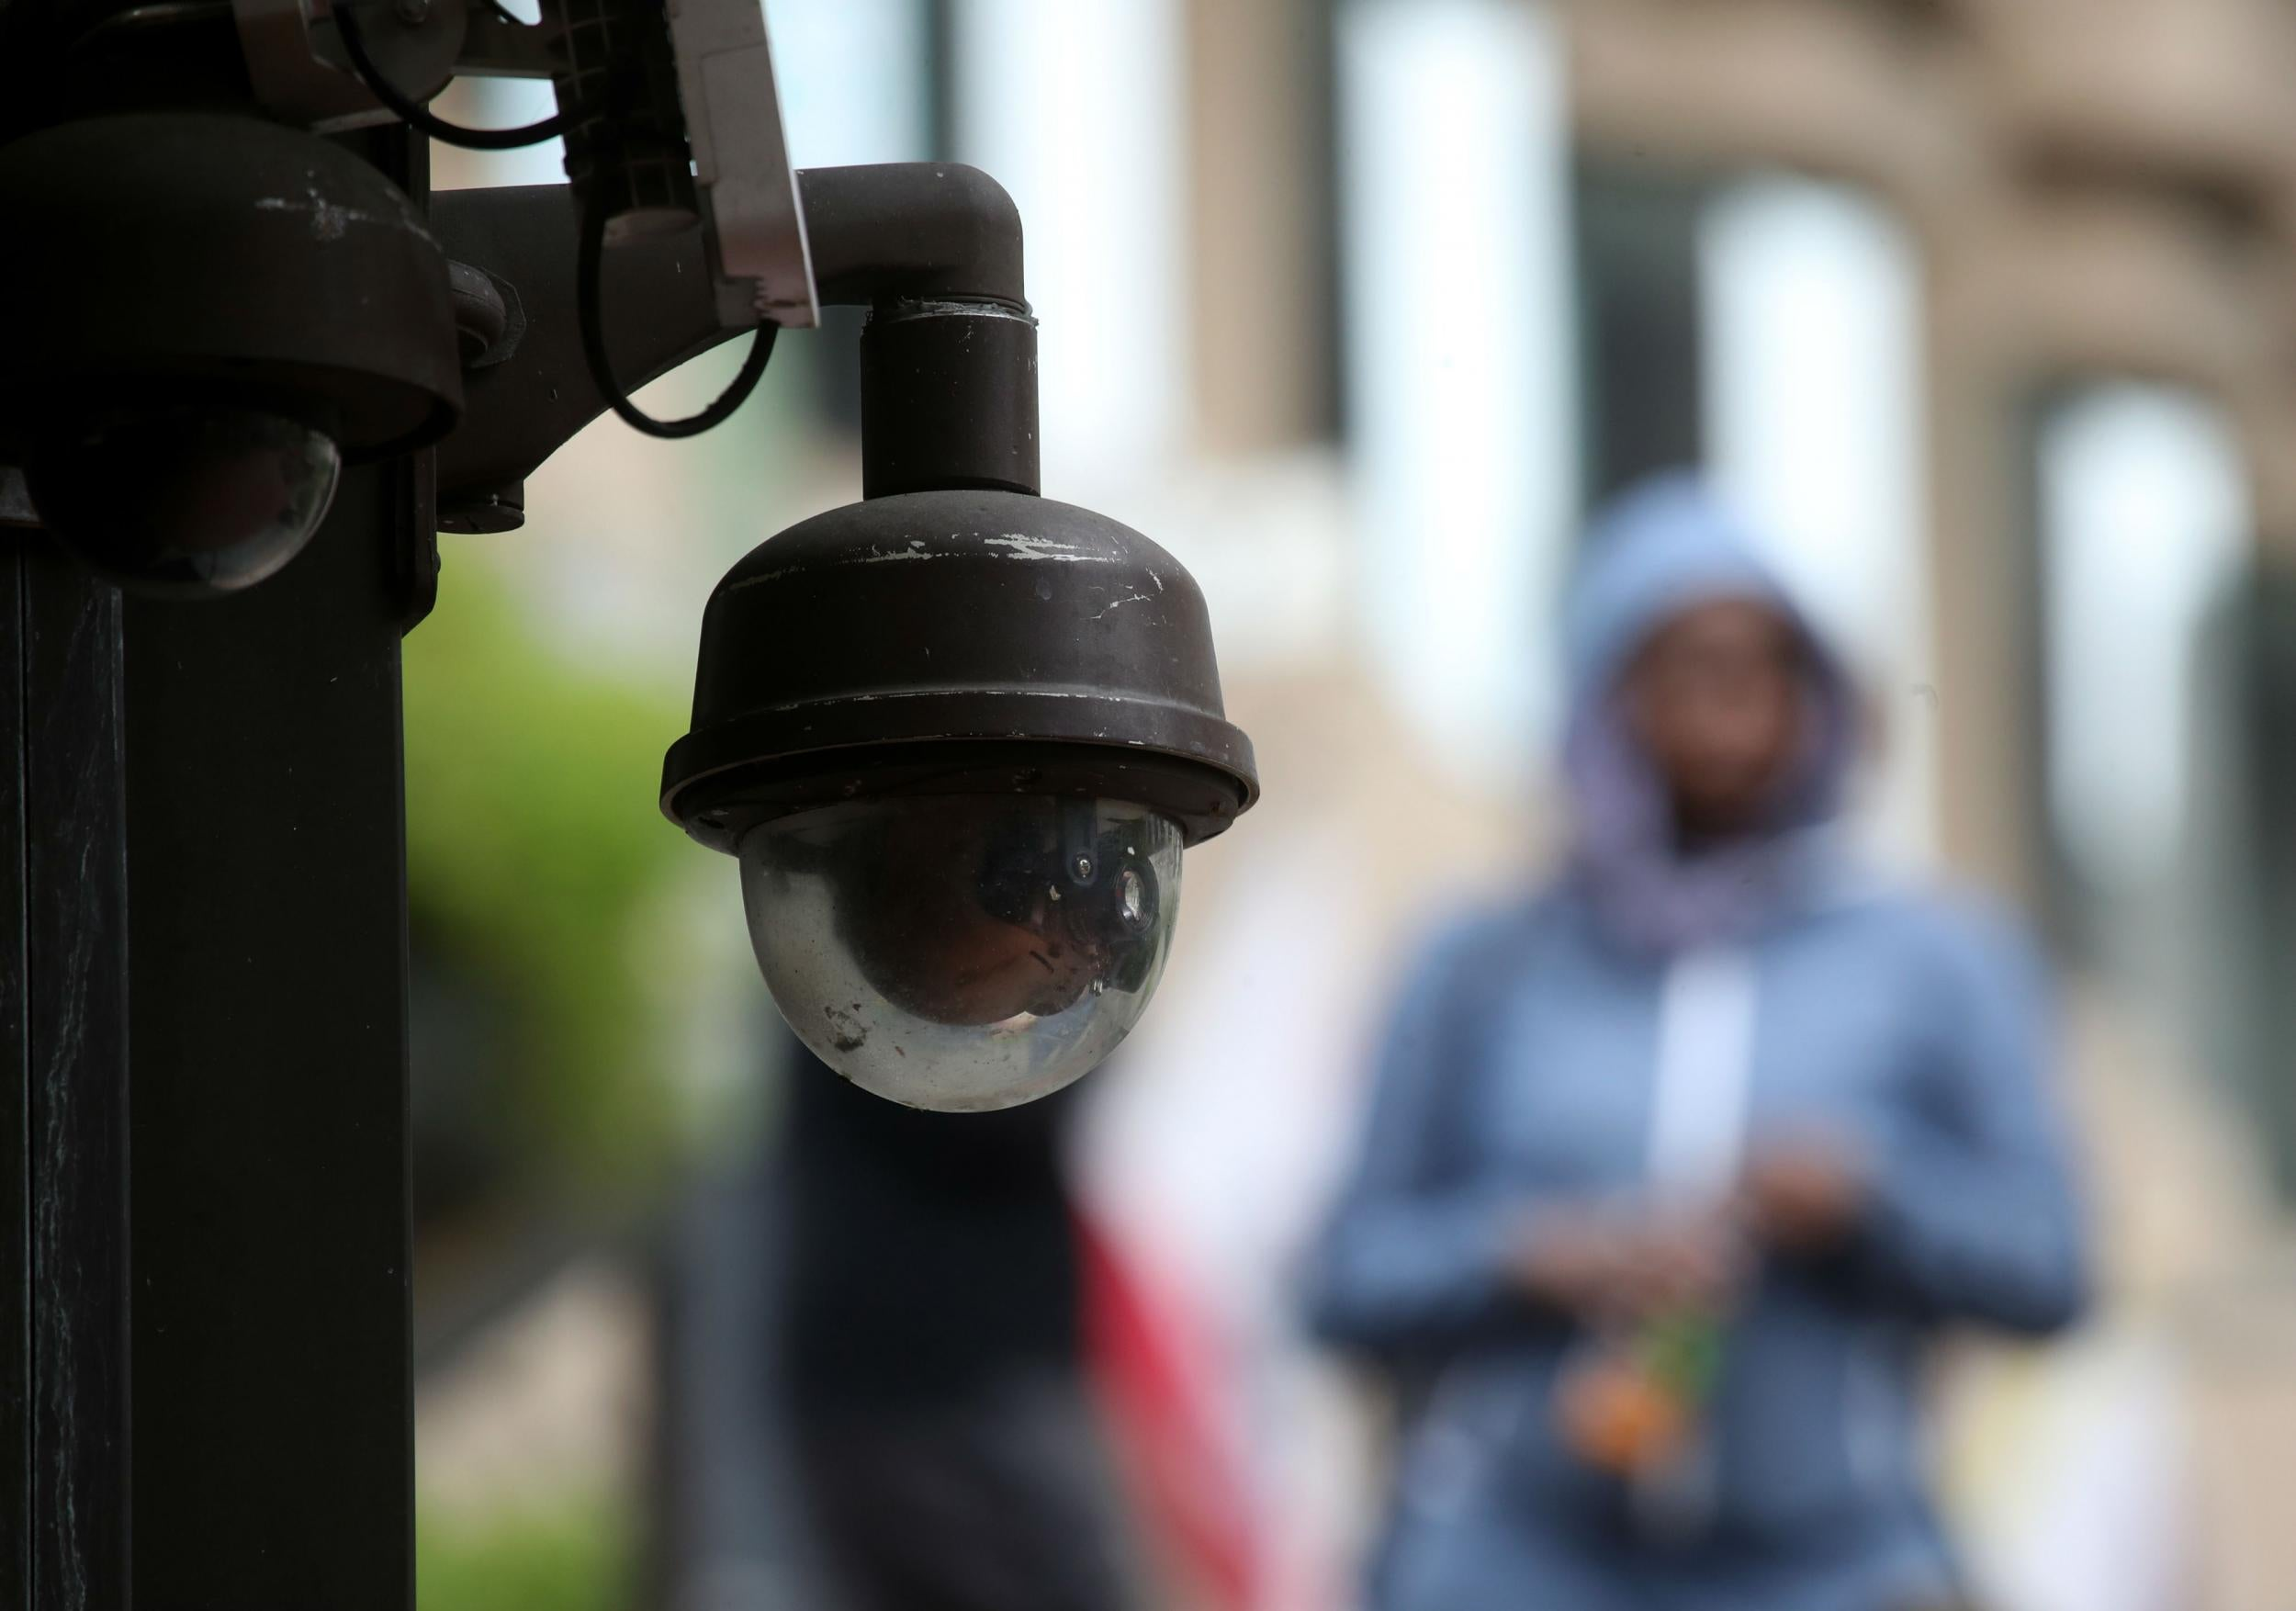 San Francisco becomes first US city to ban use of facial recognition technology by police